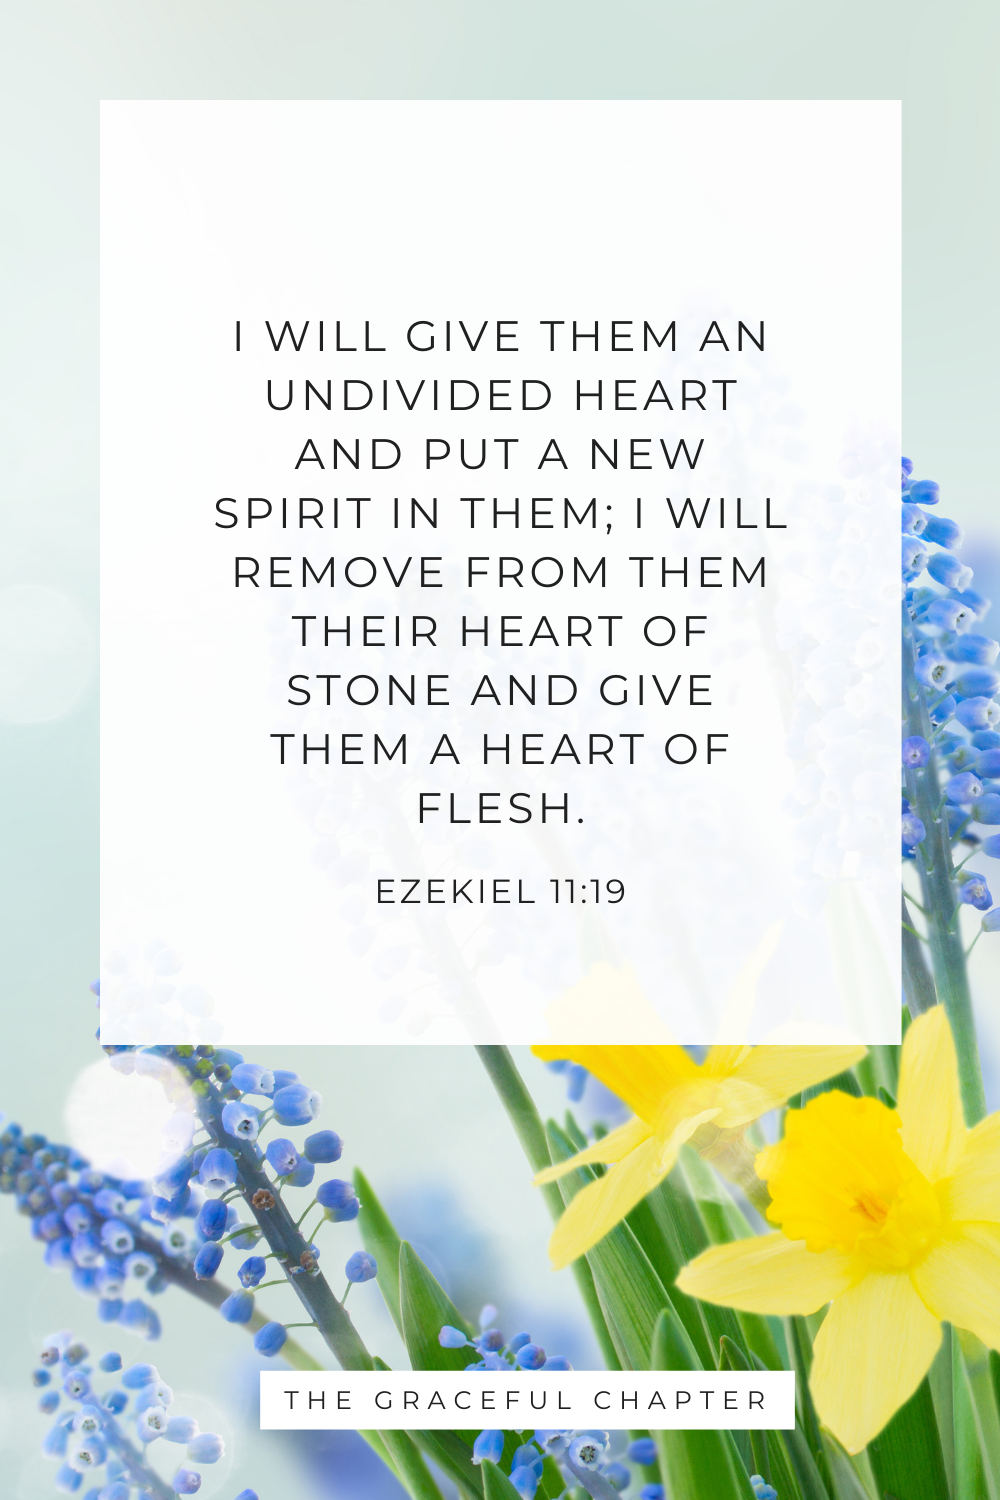 I will give them an undivided heart and put a new spirit in them; I will remove from them their heart of stone and give them a heart of flesh. Ezekiel 11:19